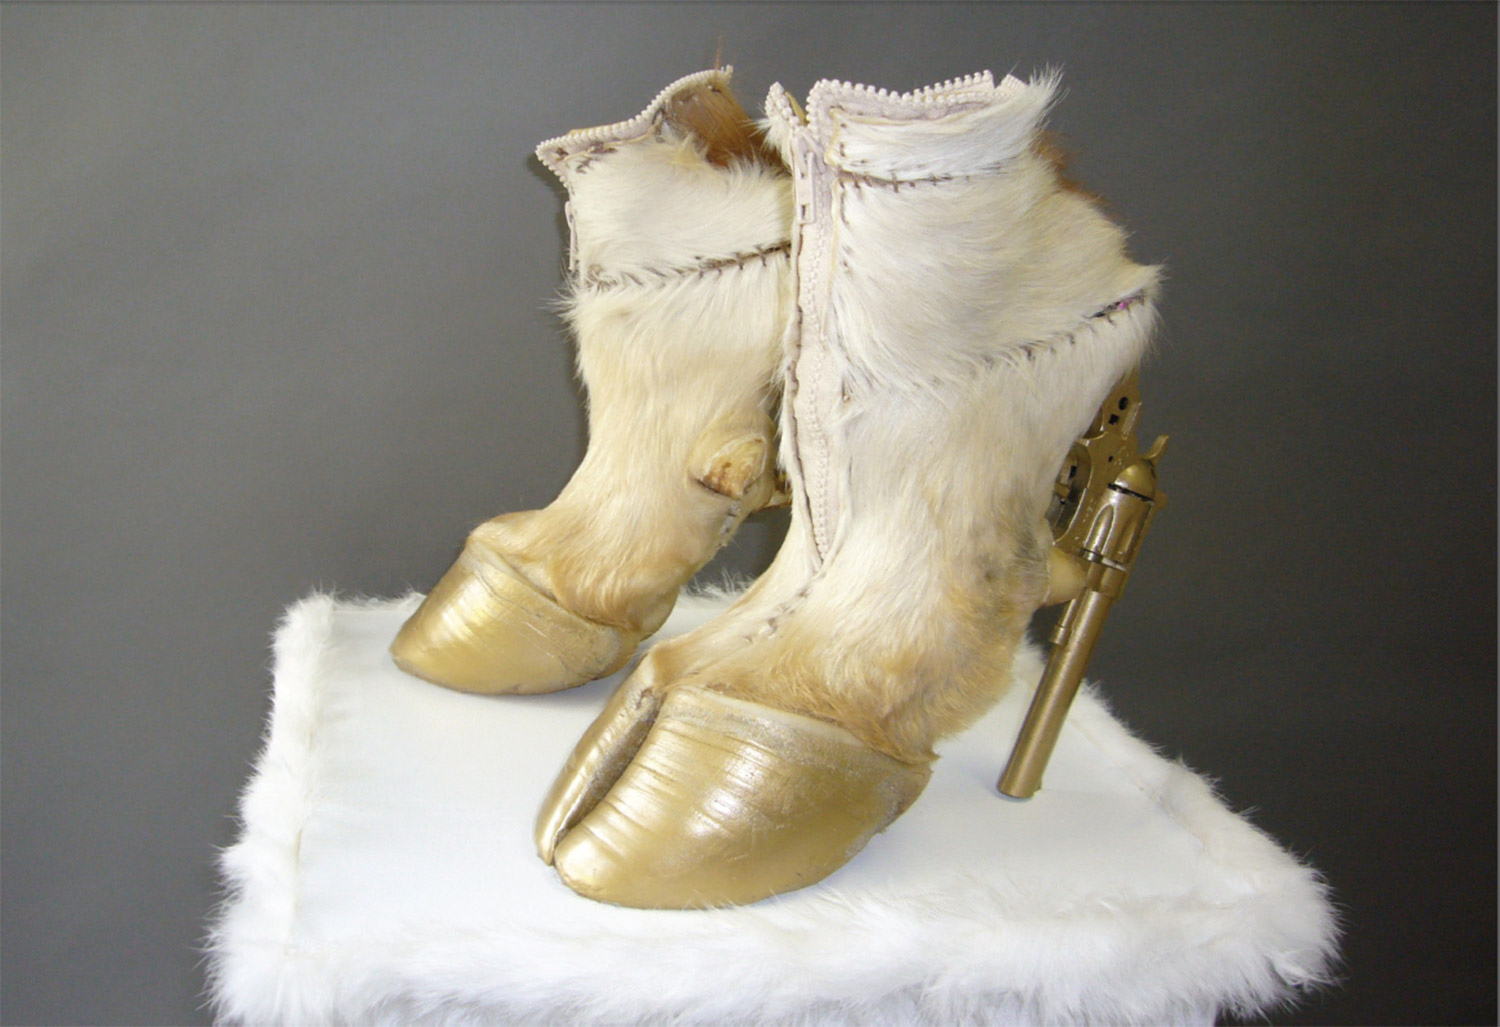 Iris Schieferstein - taxidermy couture, hoof heels with gold guns side angle